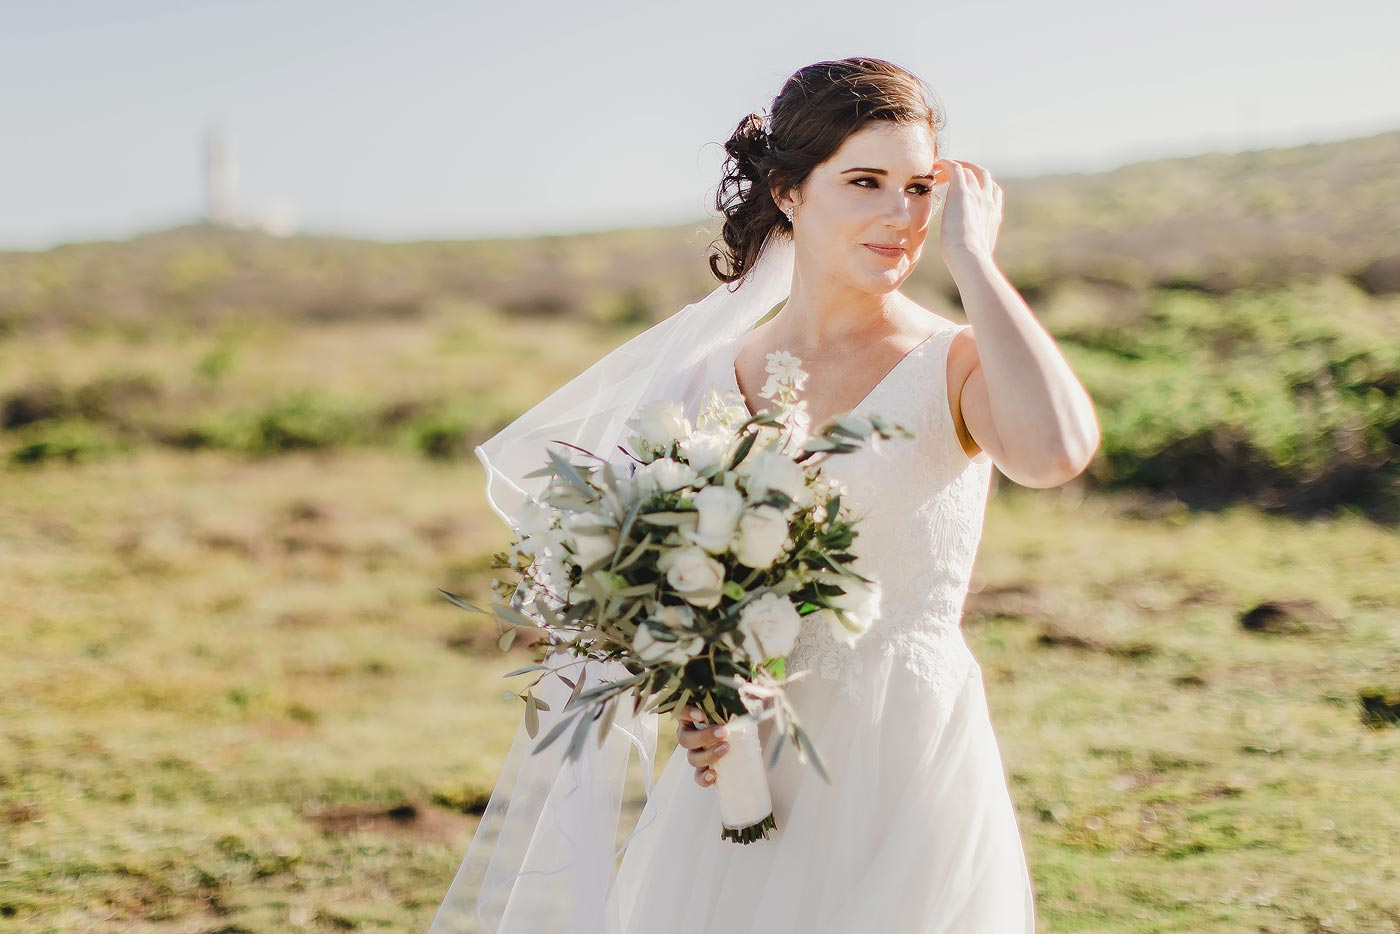 Copy of Classic Bridal Portraits with bouquet and wedding veil in the Western Cap of South Africa.